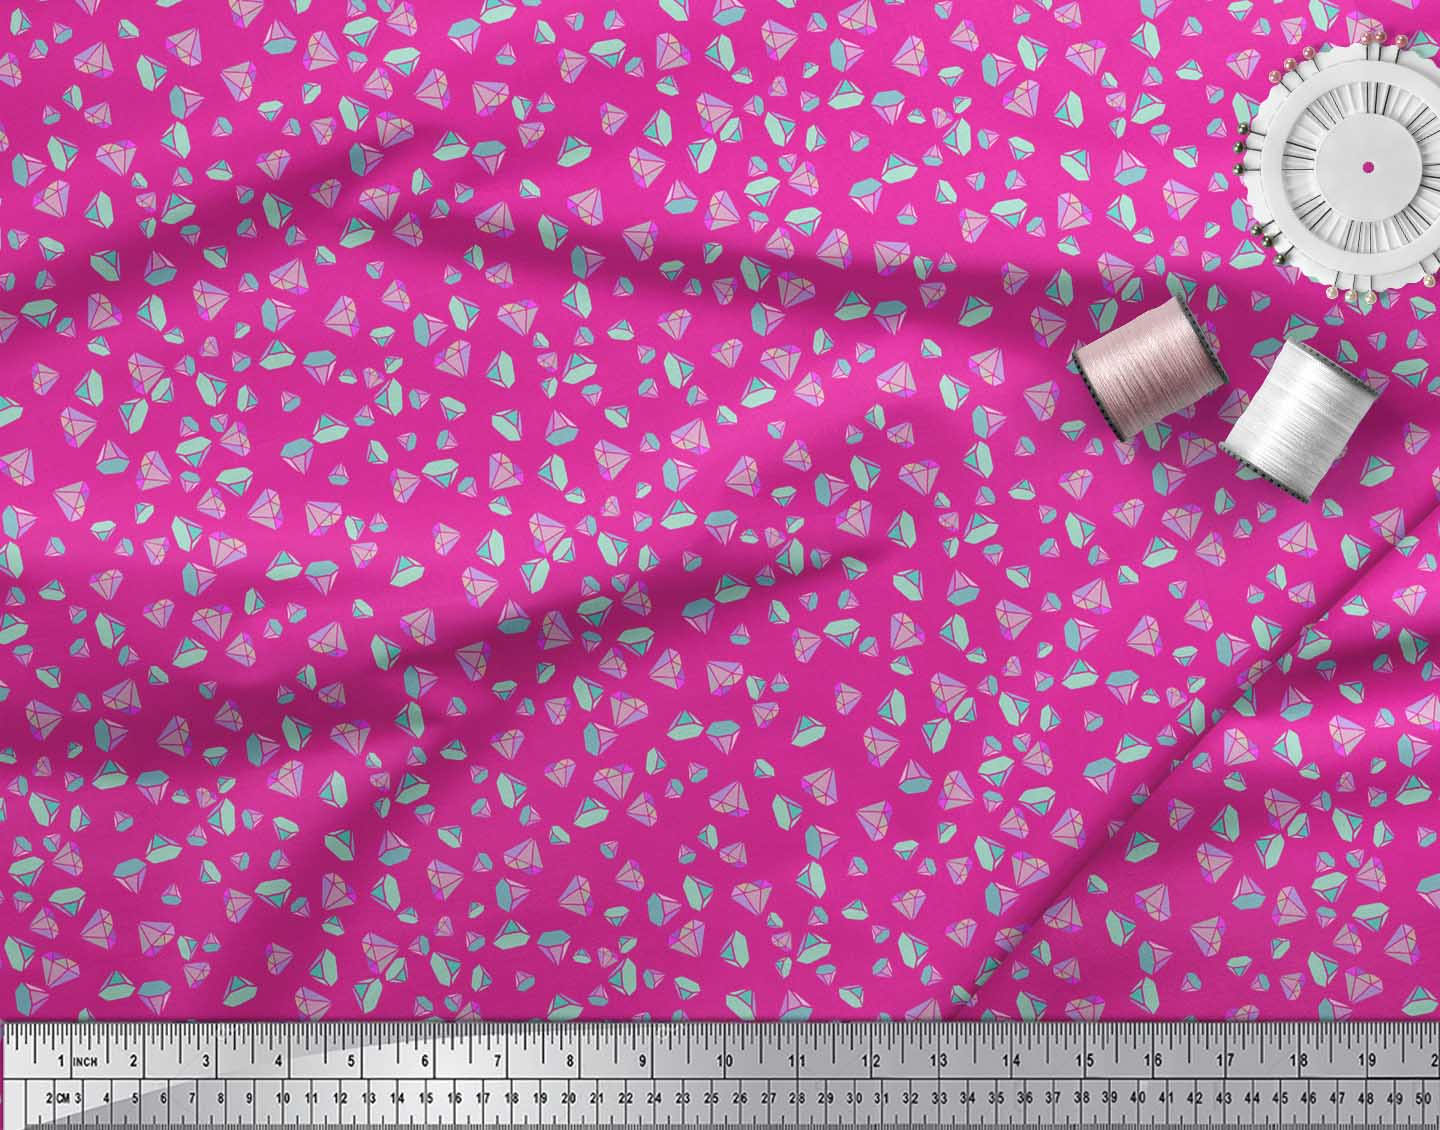 Soimoi-Pink-Cotton-Poplin-Fabric-Diamond-Geometric-Print-Fabric-cML thumbnail 4